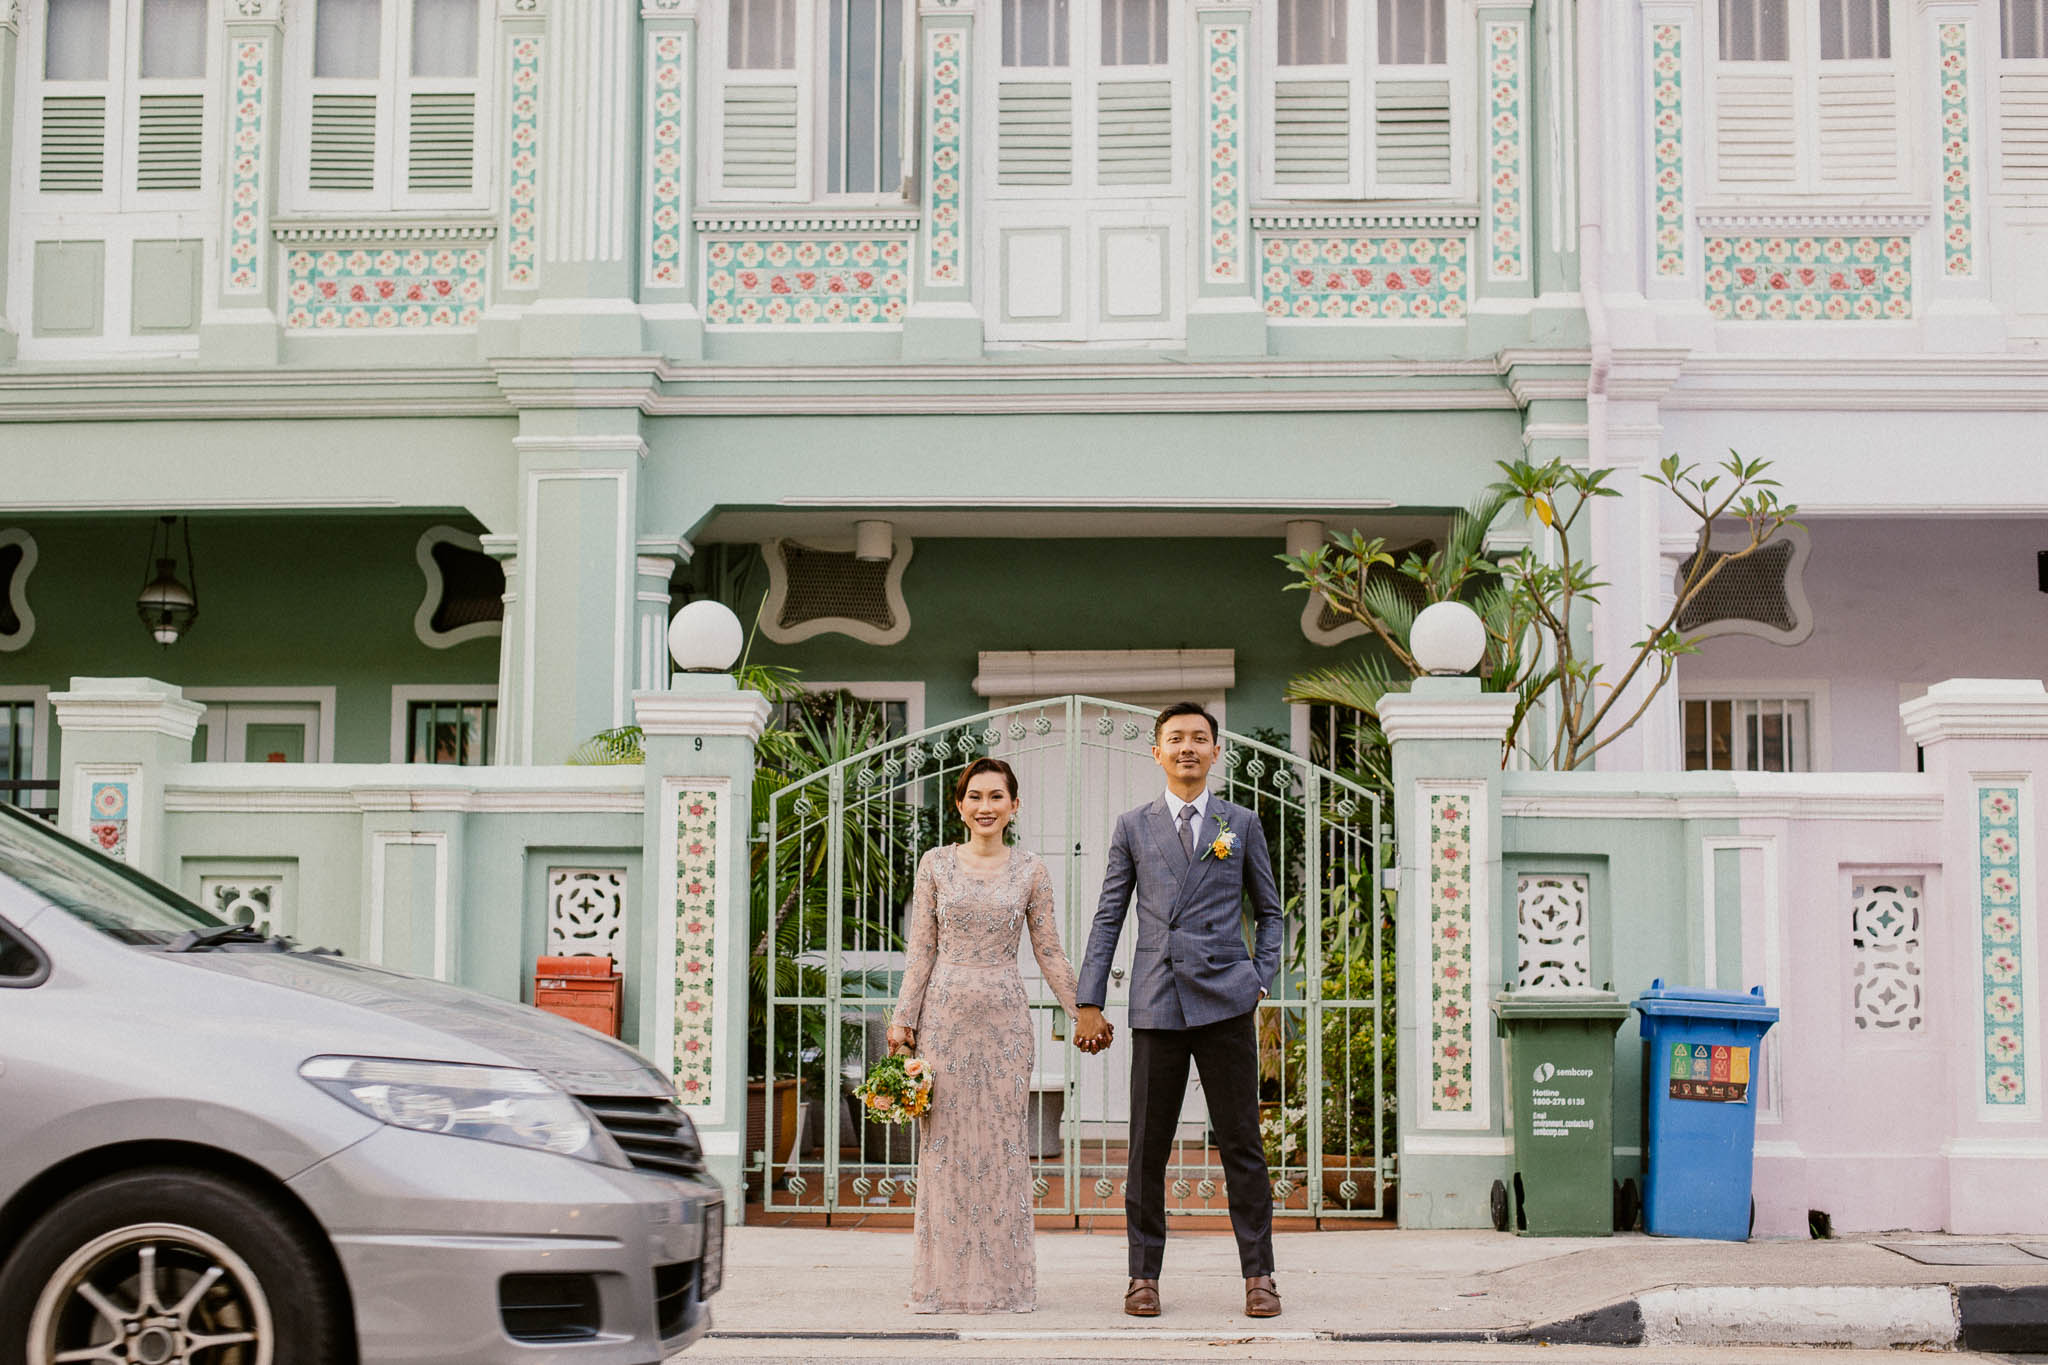 singapore-wedding-photographer-we-made-these-2016-selects-124.jpg